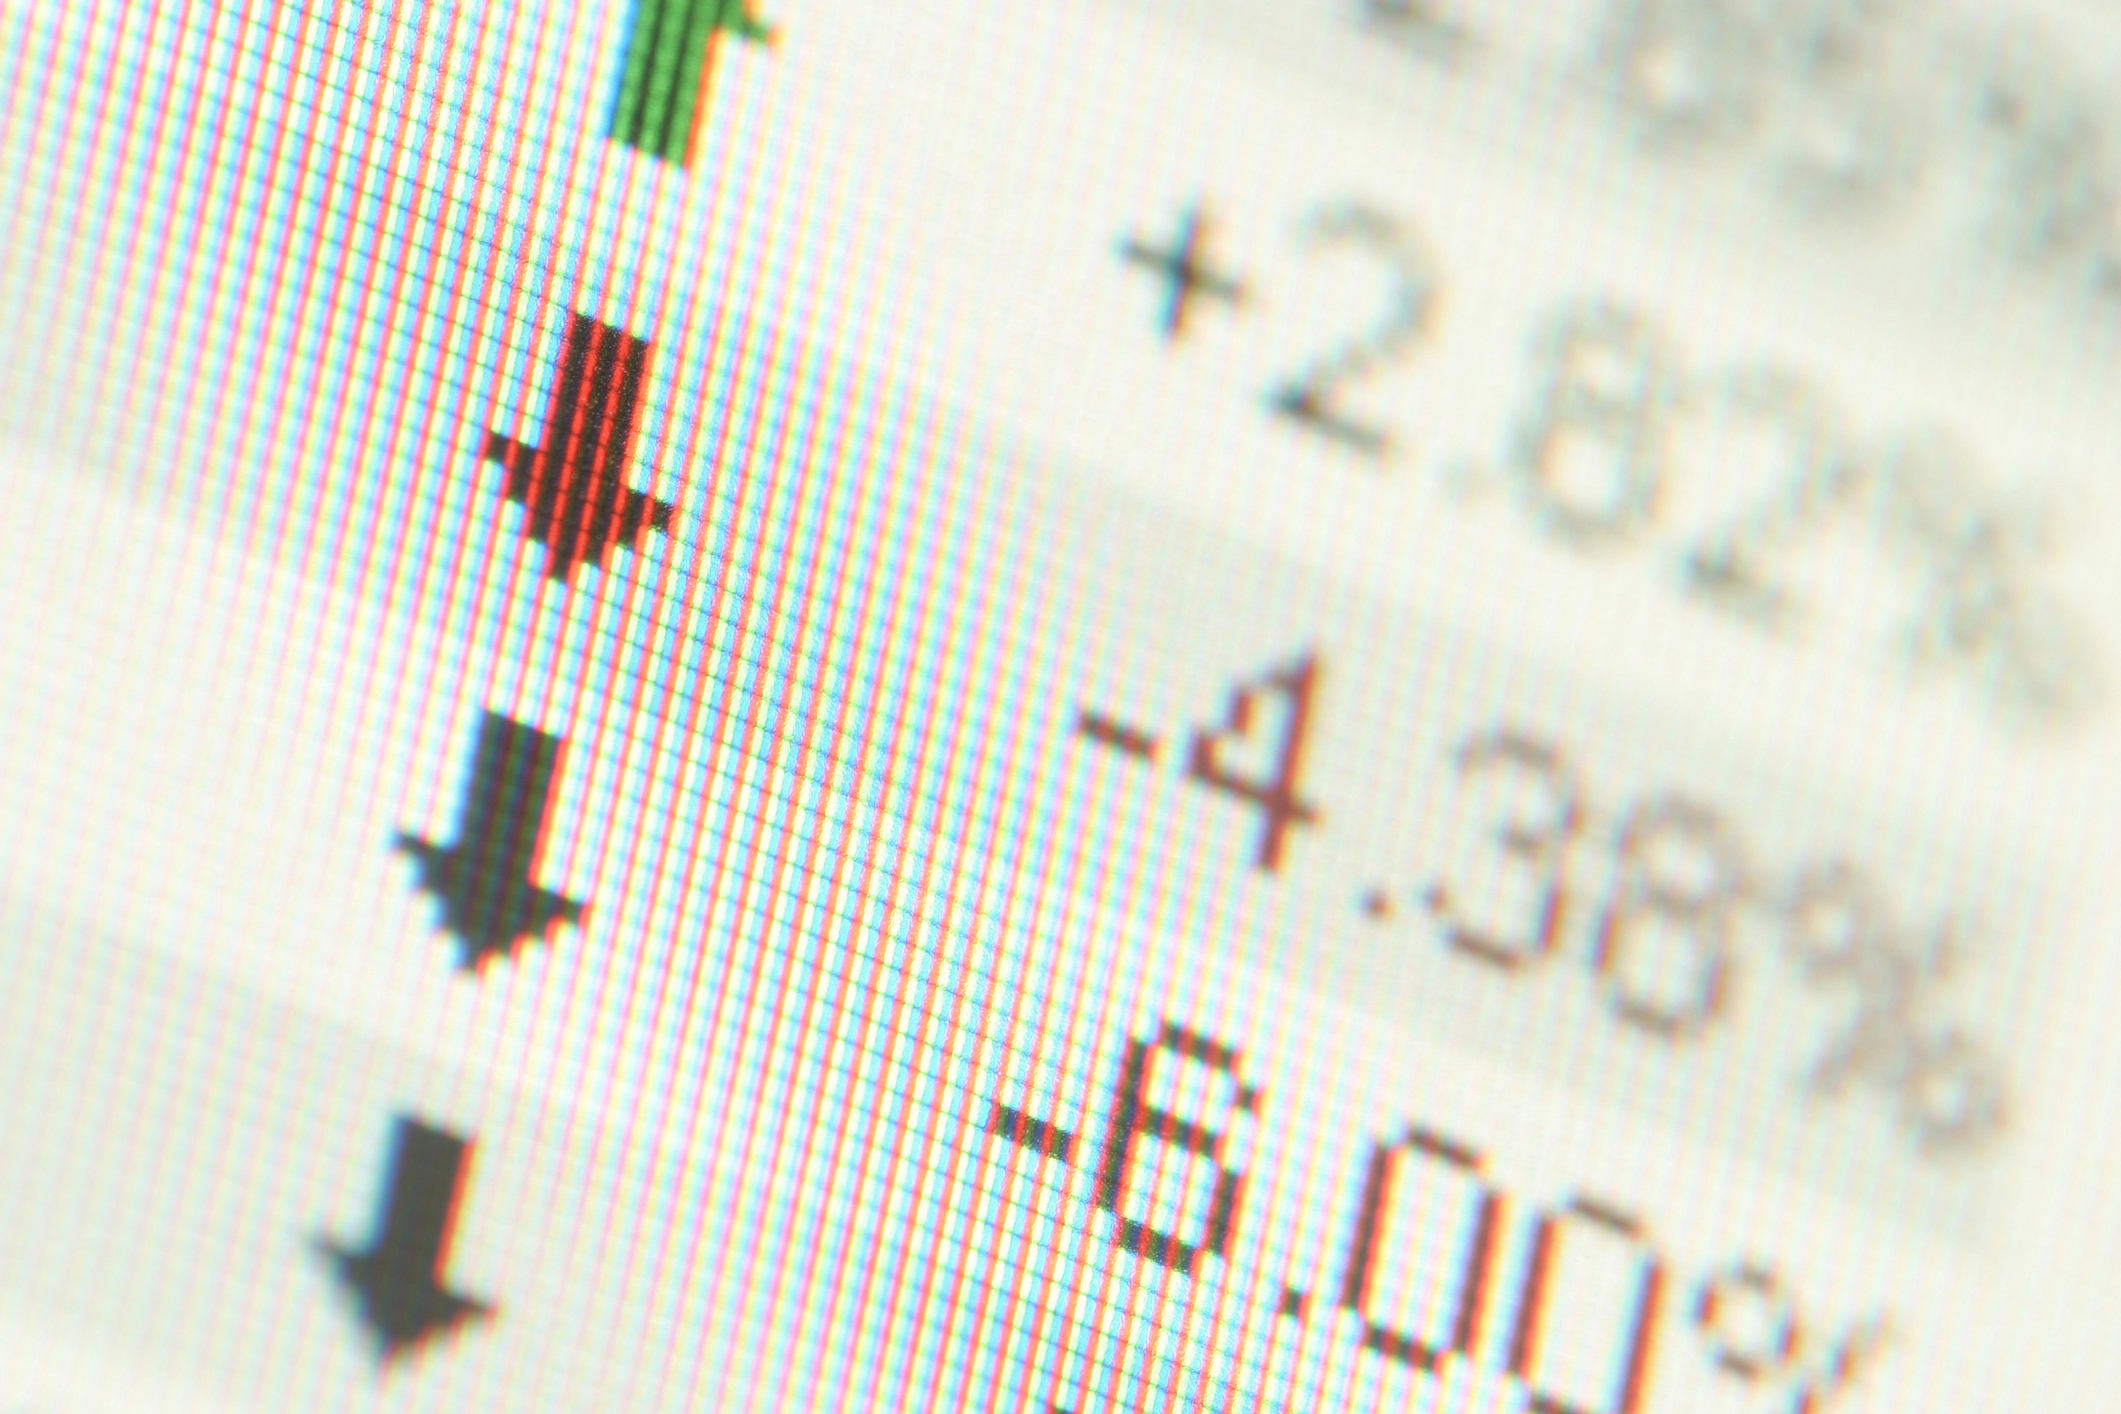 How to Calculate Growth Implied in Stock Price | Pocketsense